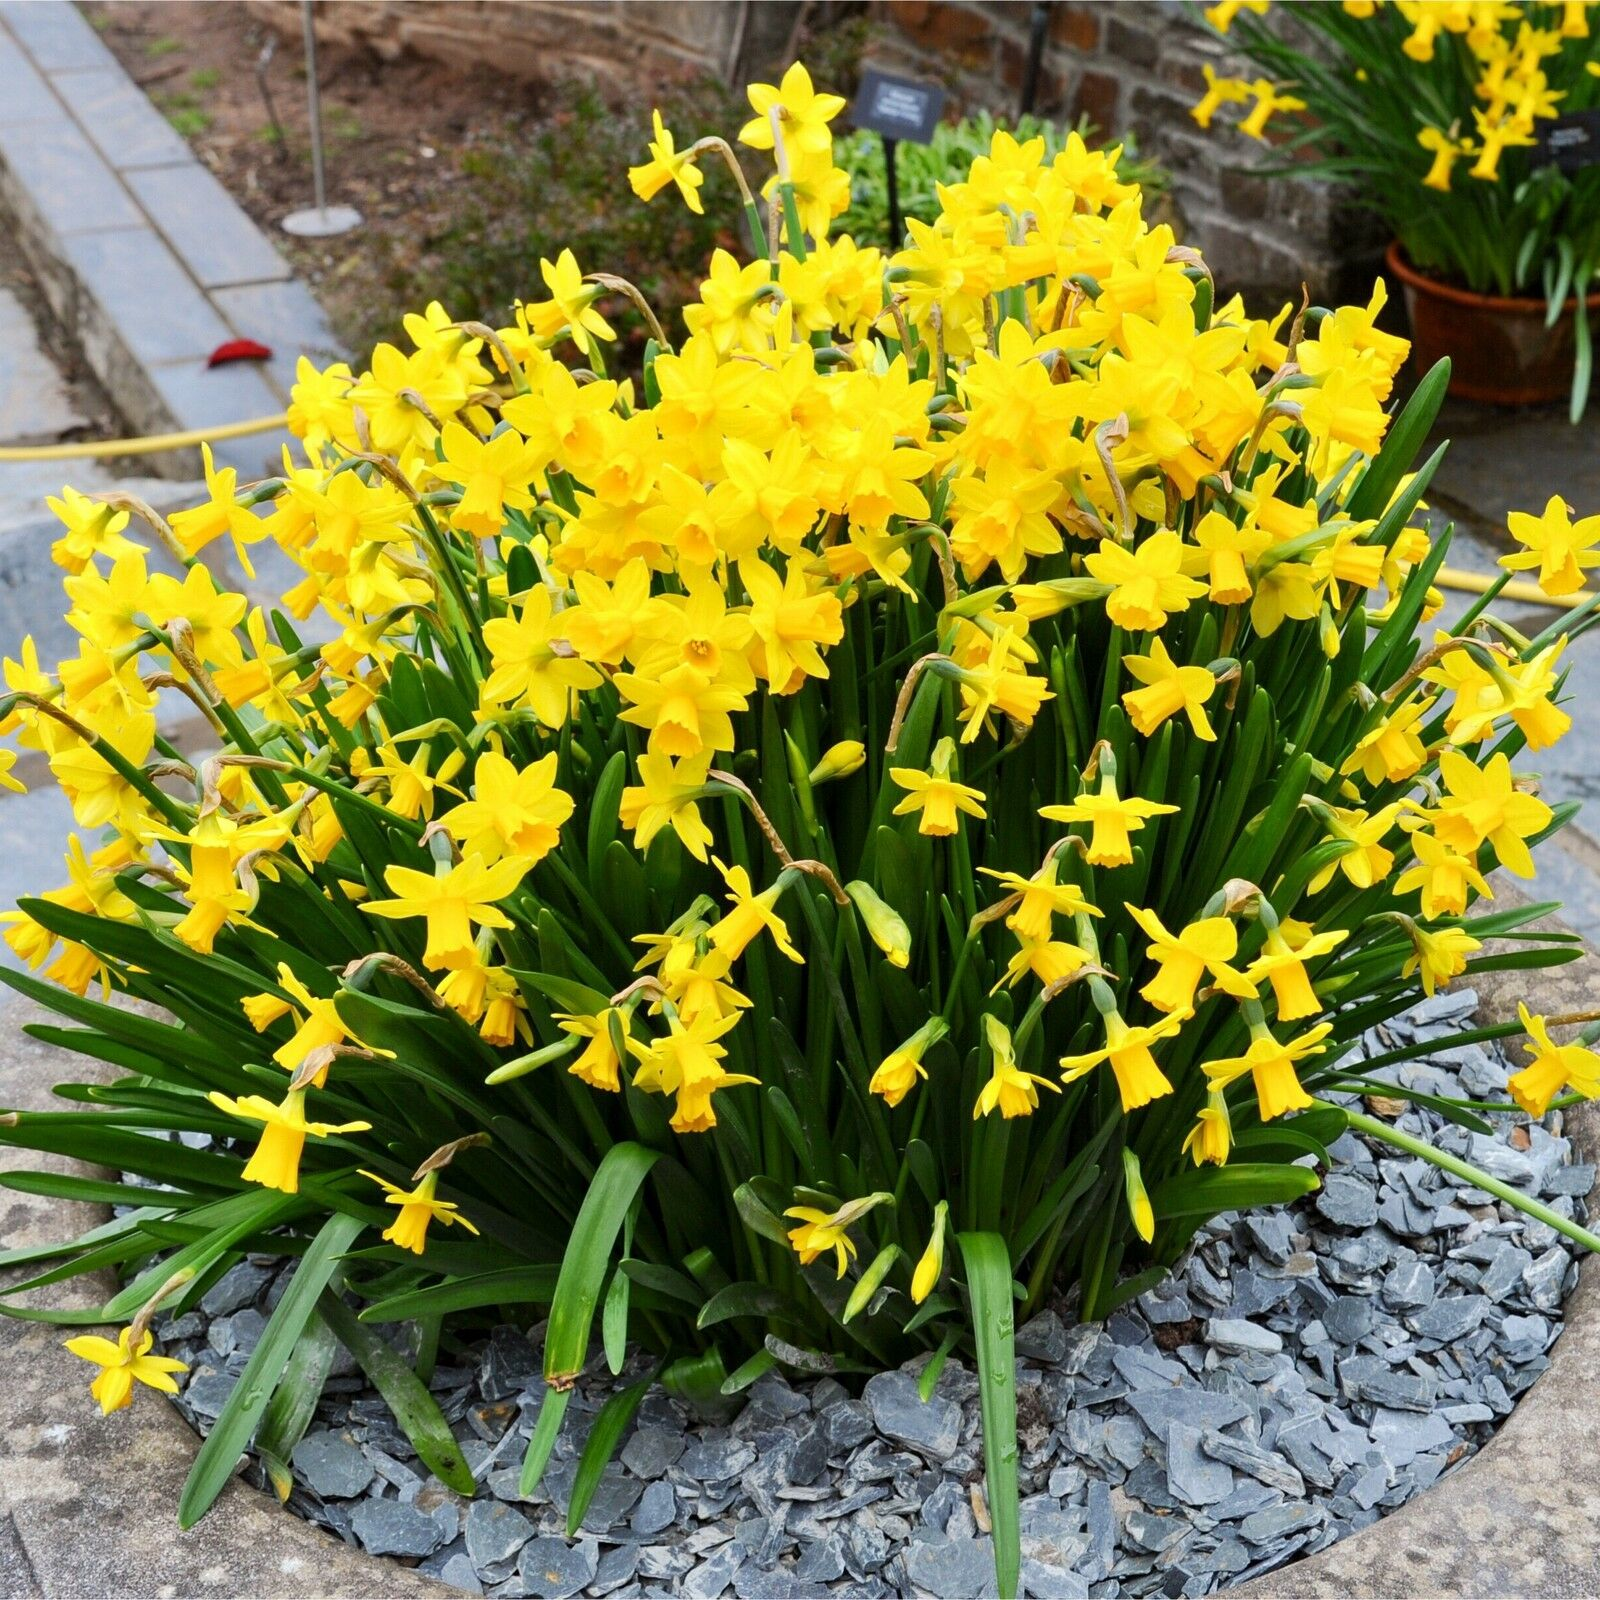 Dwarf Daffodil Bulbs Spring Flowering